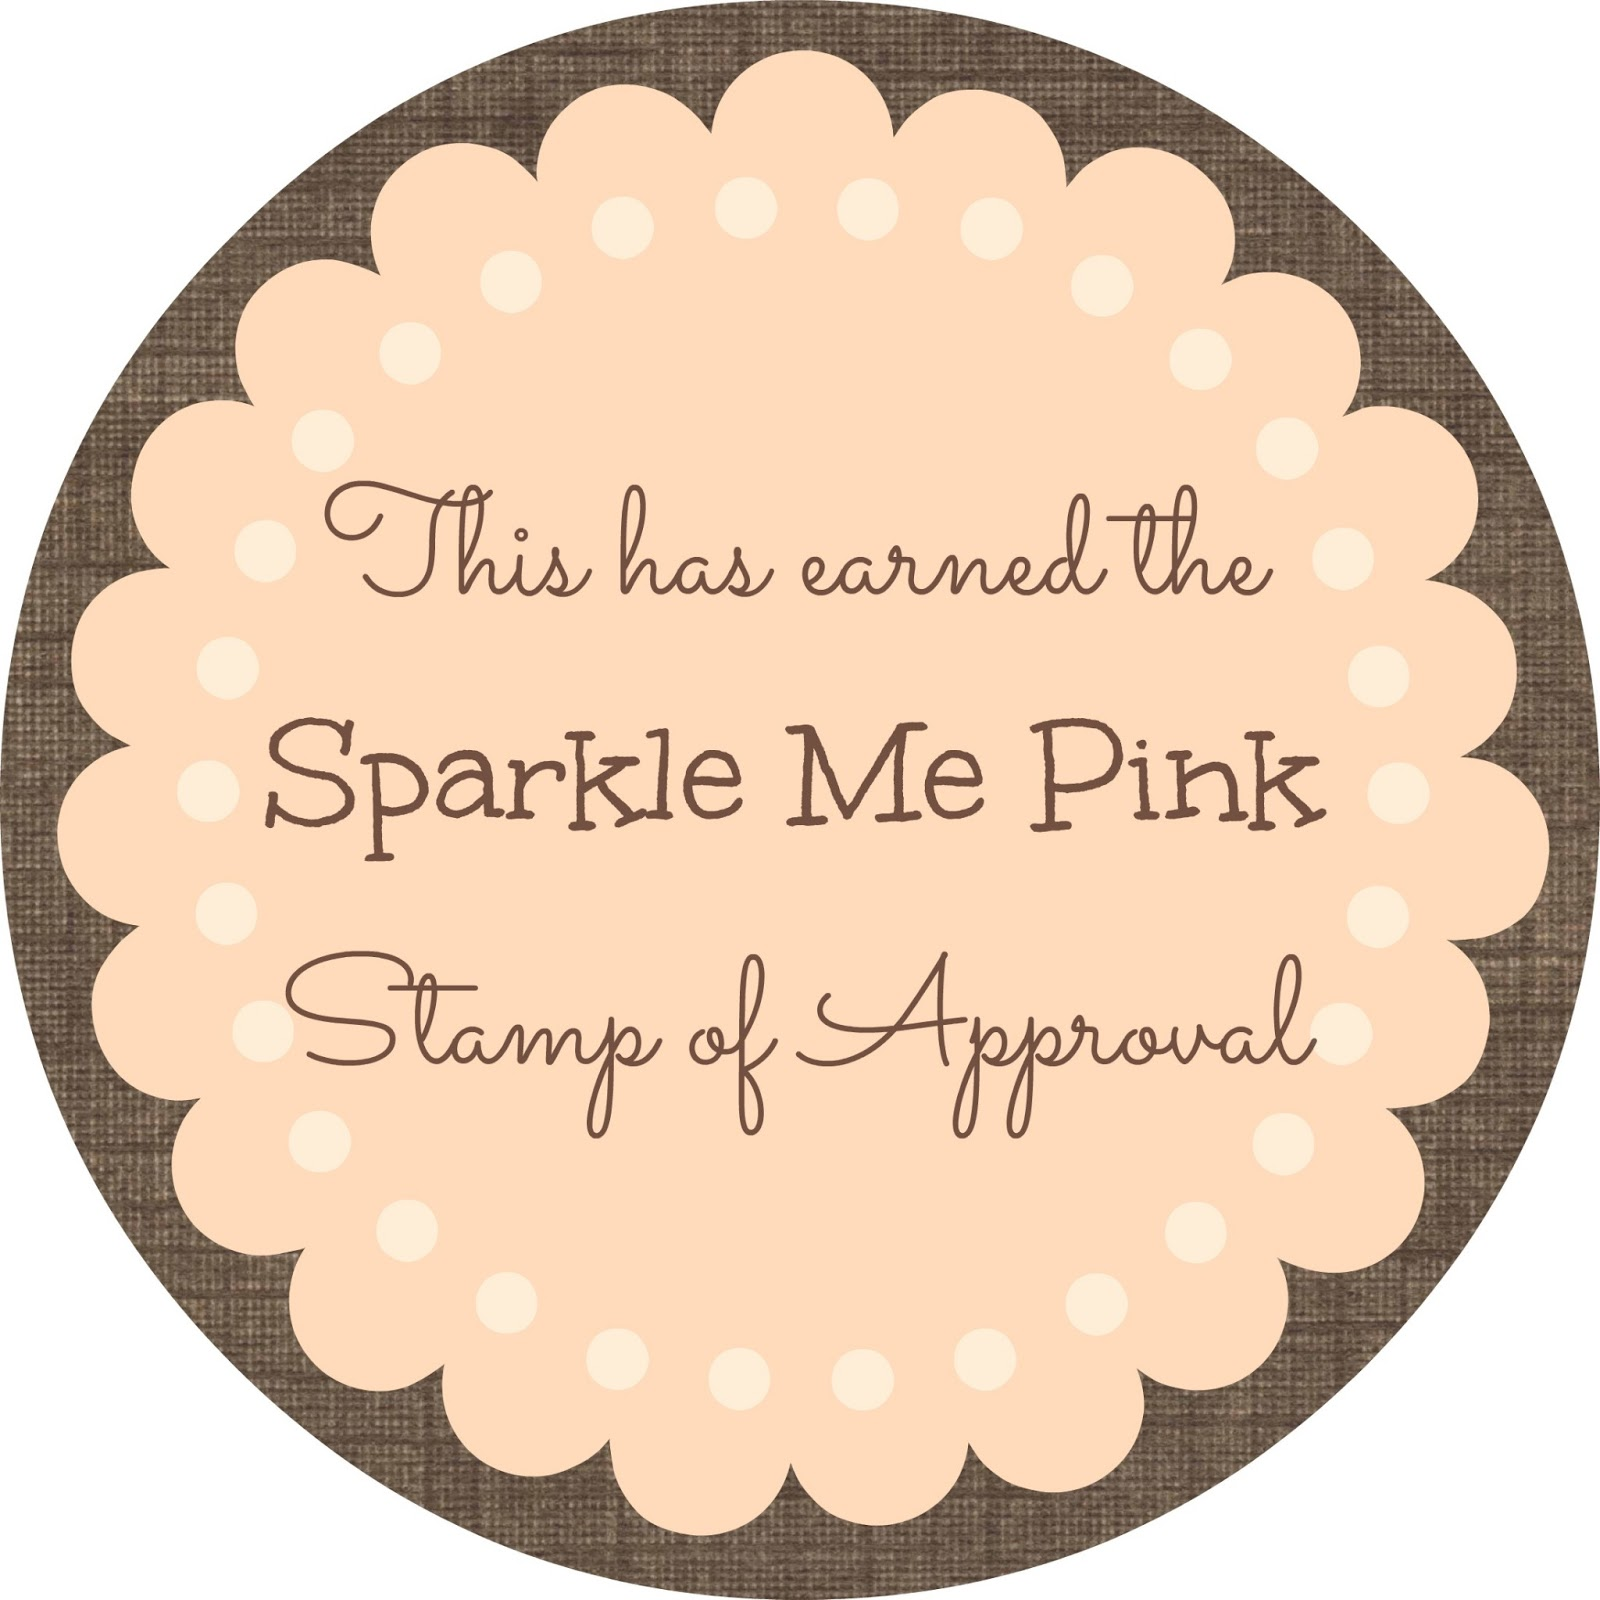 *The Sparkle Awards* http://sparklemepink88.blogspot.com/2013/02/sparkle-awards.html